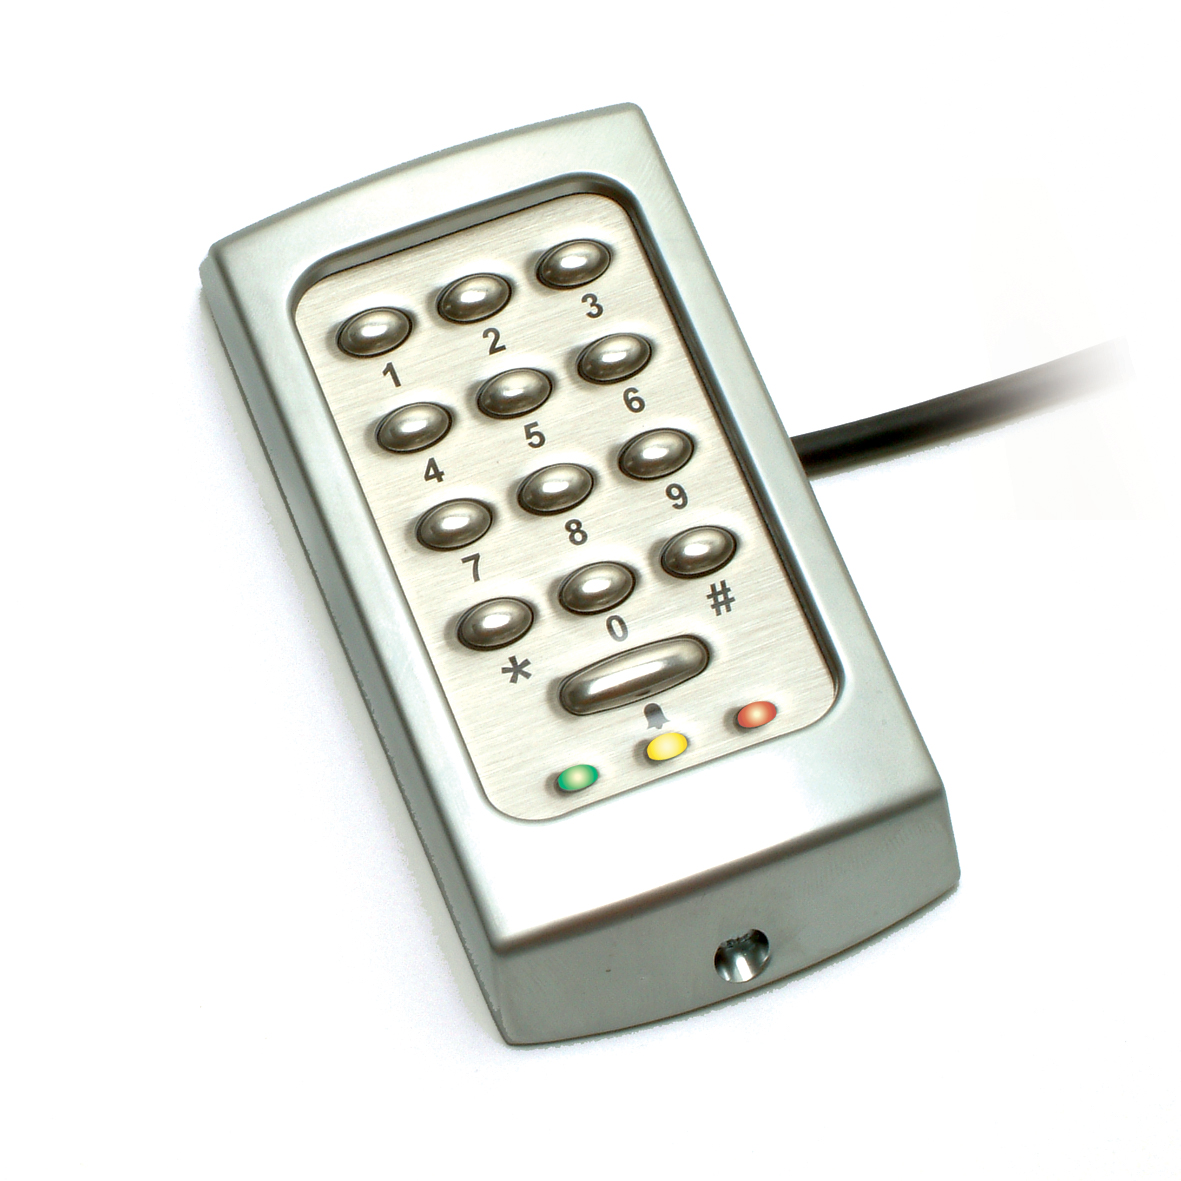 TOUCHLOCK stainless steel keypad - K75